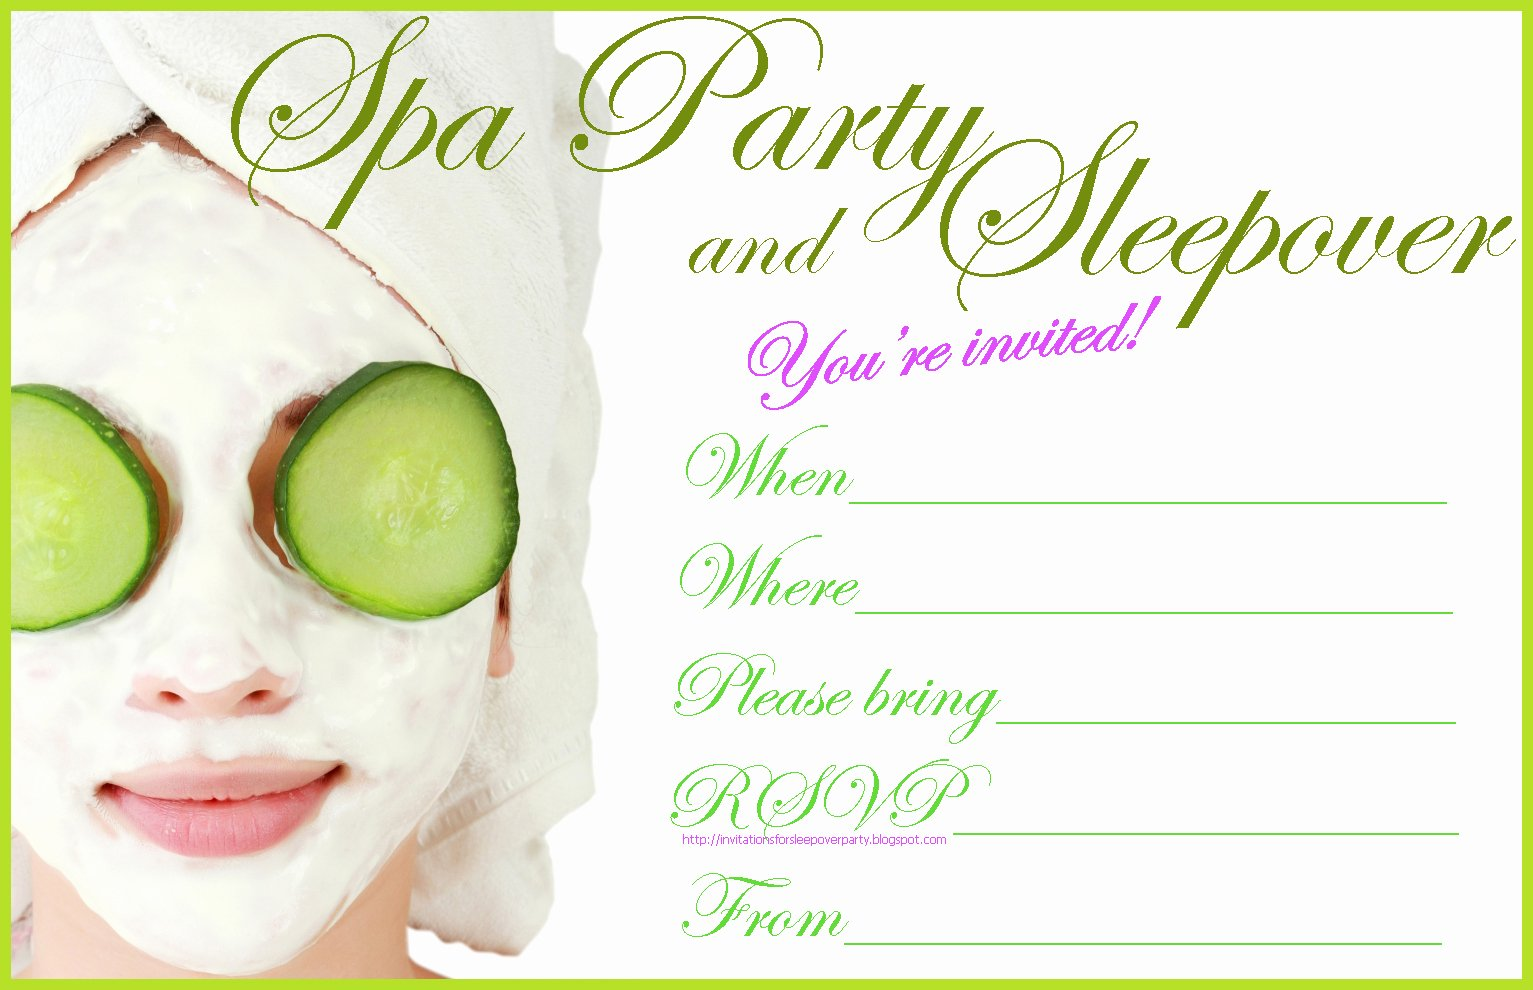 spa party invitation free to print